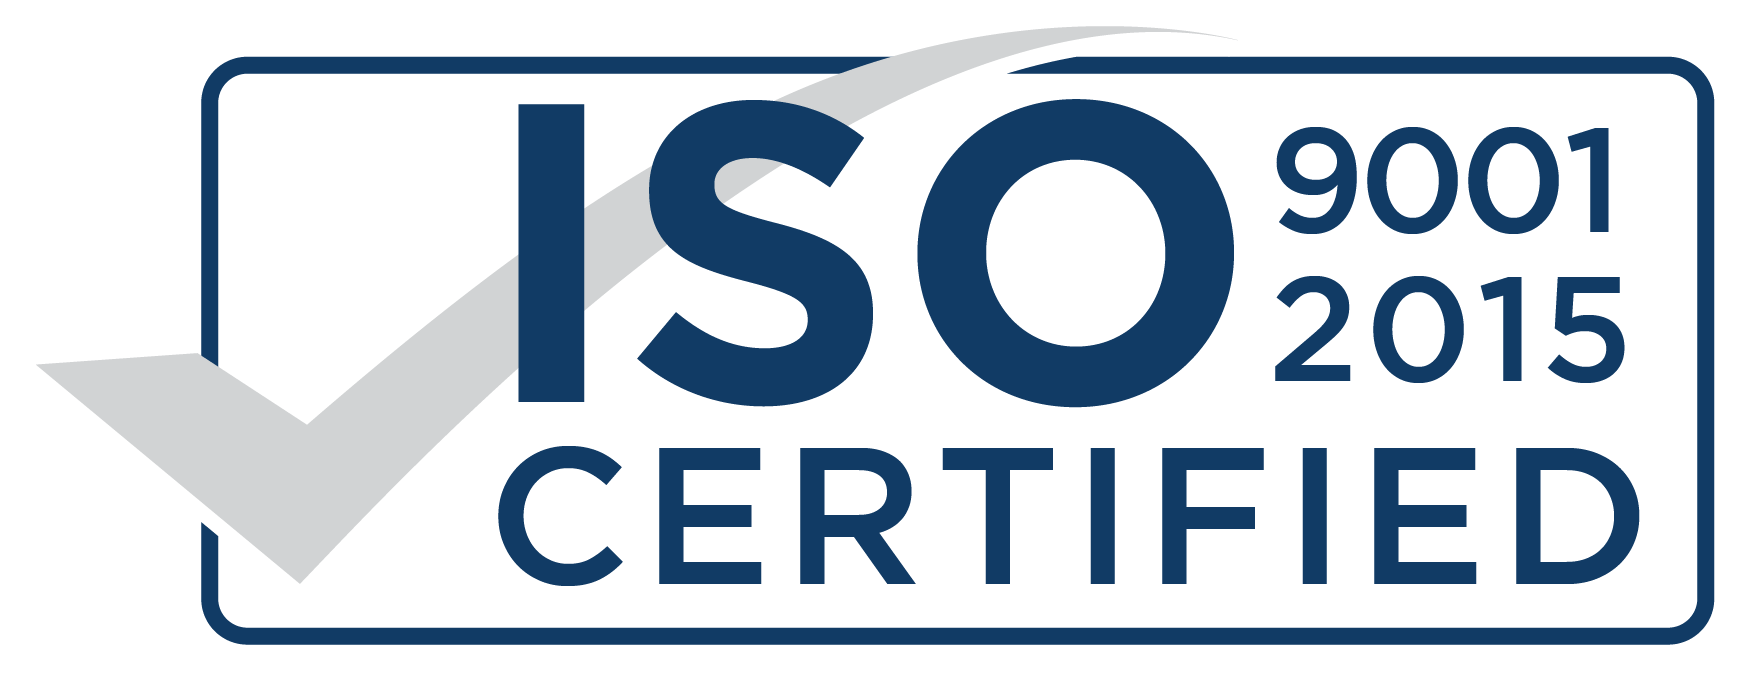 ISO-Certified-01-1